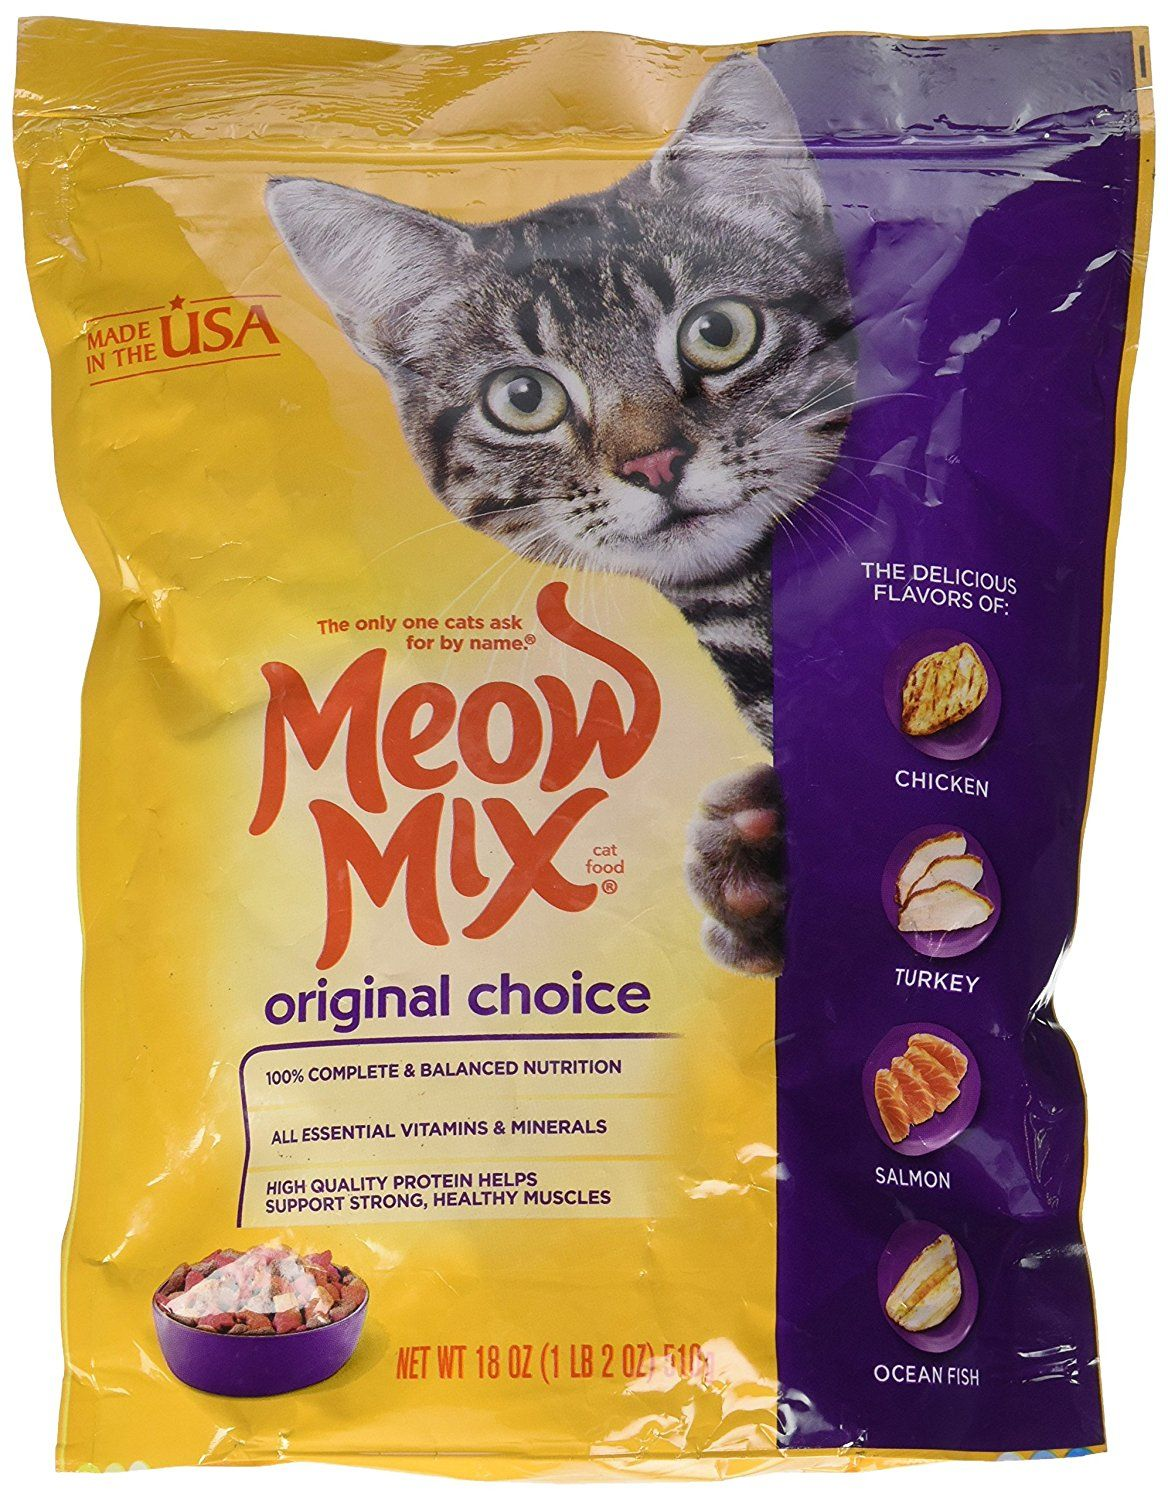 Meow Mix Original Choice Dry Cat Food Check Out The Image By Visiting The Link This Is An Affiliate Link P Healthy Cat Food Dry Cat Food Cat Food Brands